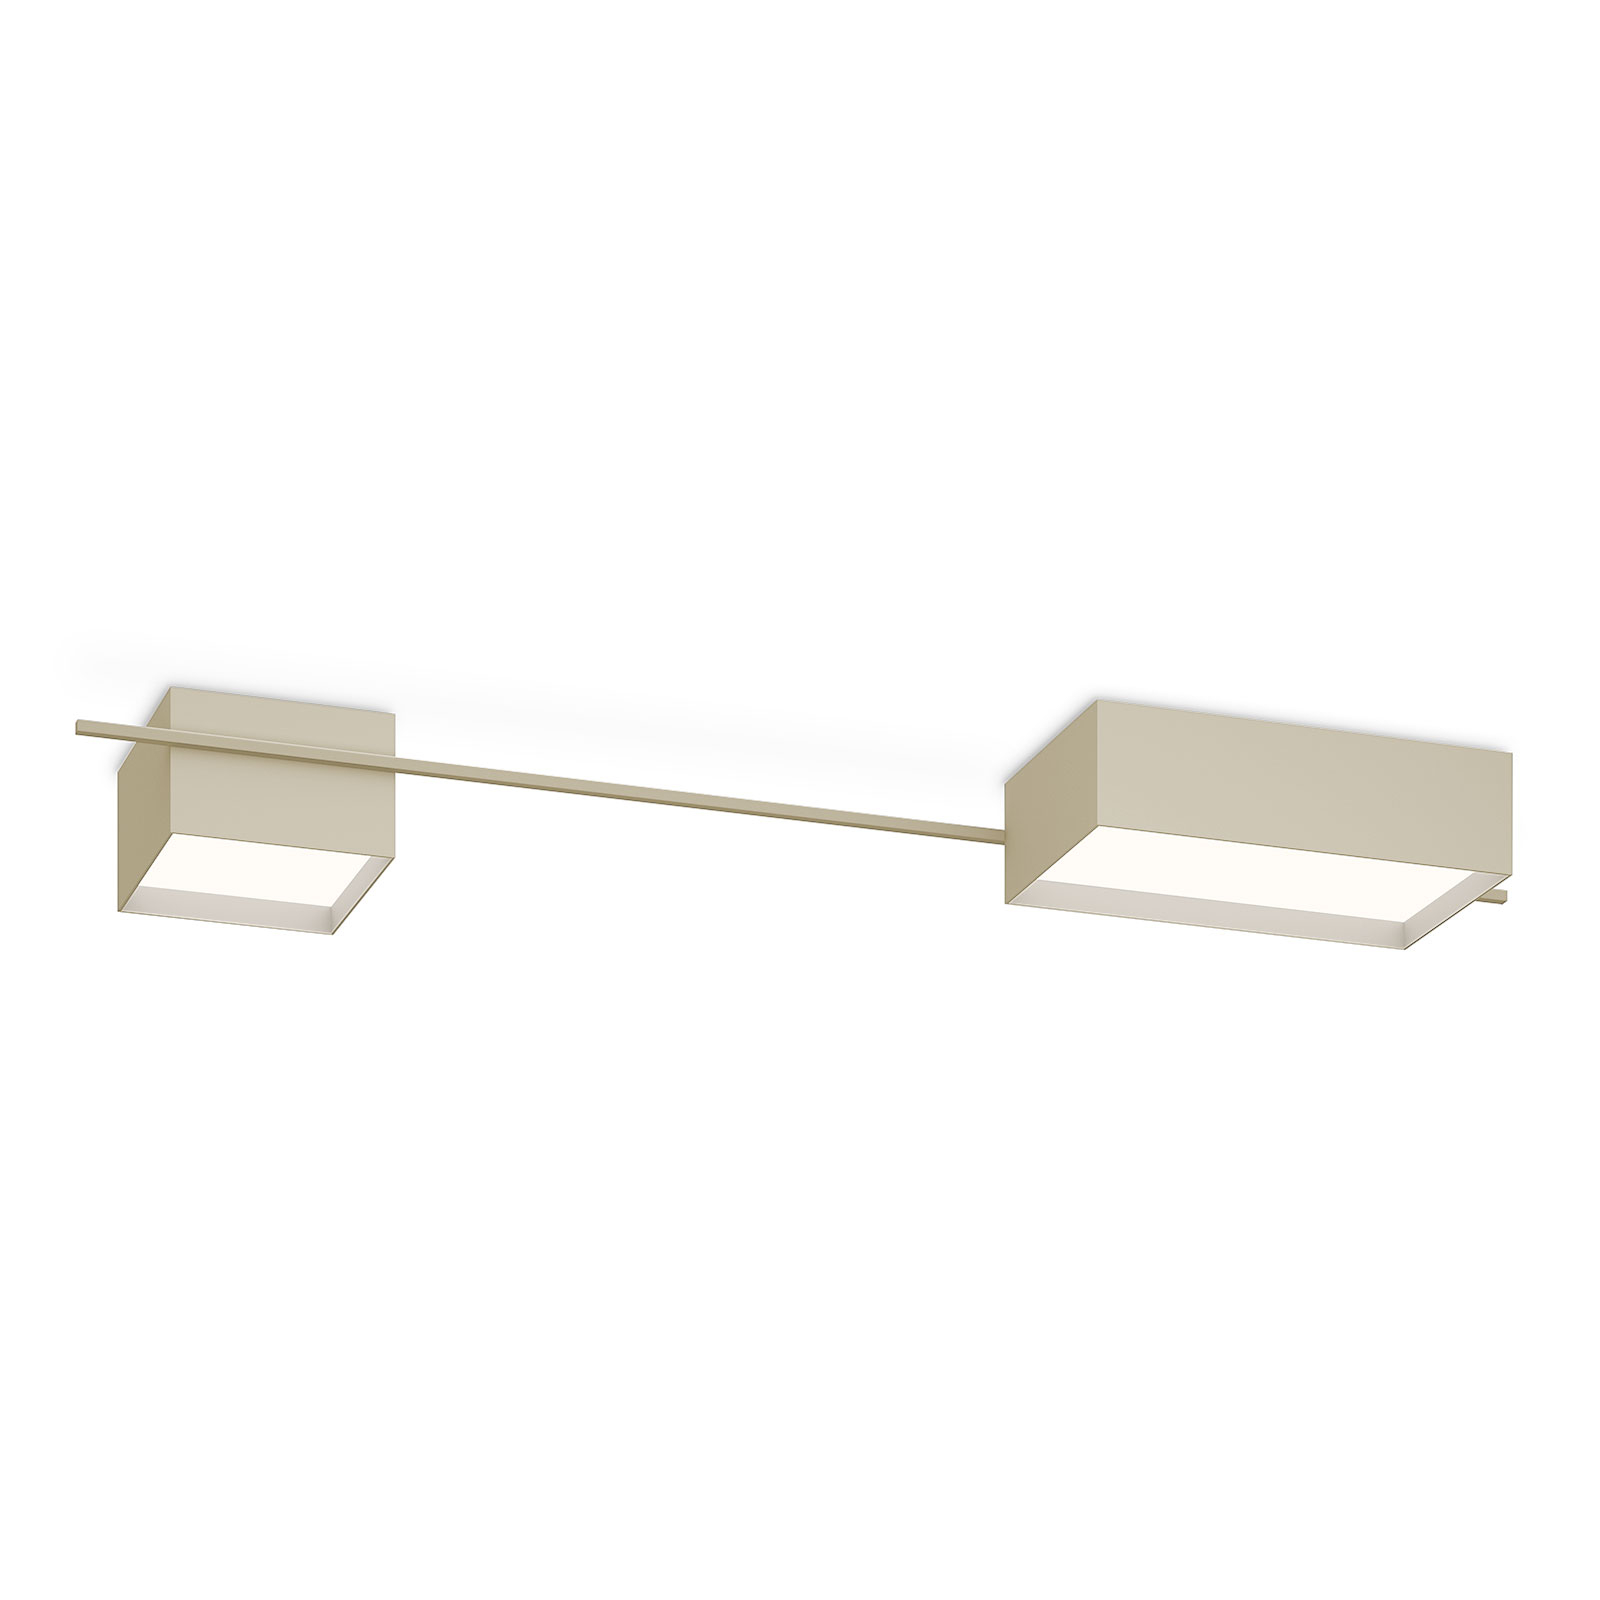 Vibia Structural 2642 taklampe, lysegrå